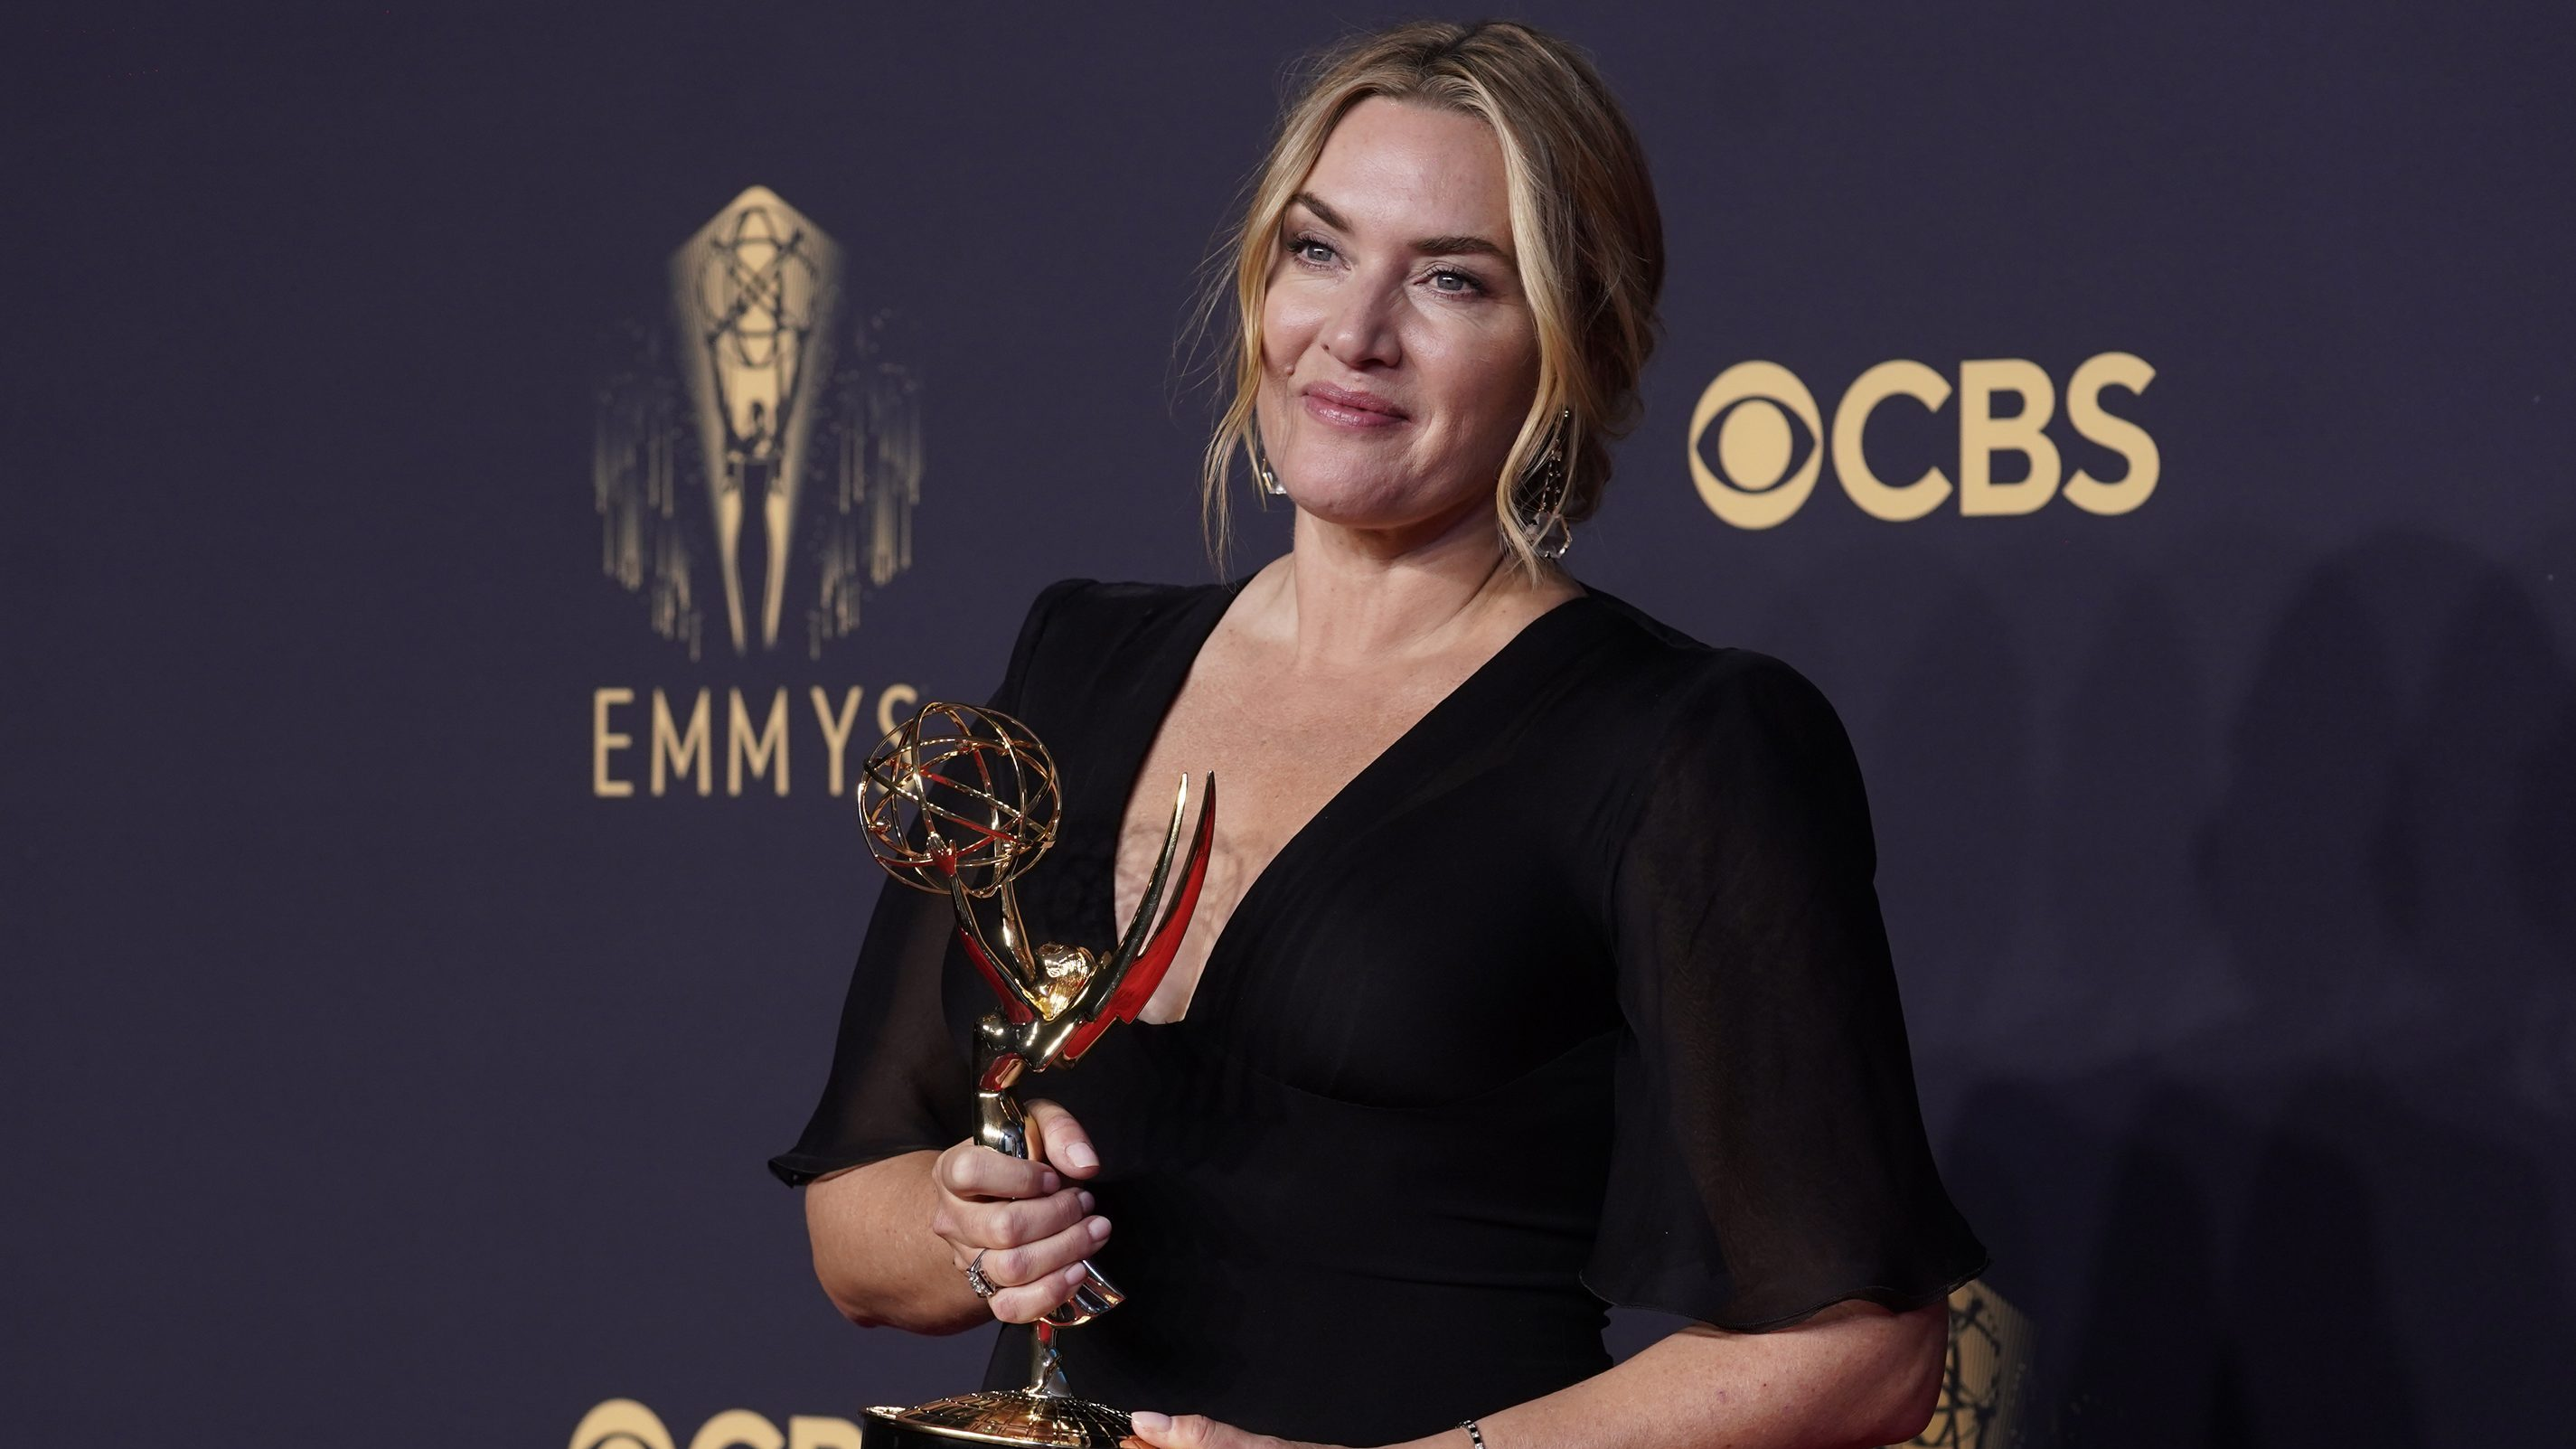 """Kate Winslet Says 'Mare Of Easttown' Is Shifting """"How Leading Ladies Are Seen""""; Emmy Winner Waiting On Season 2 Scripts"""